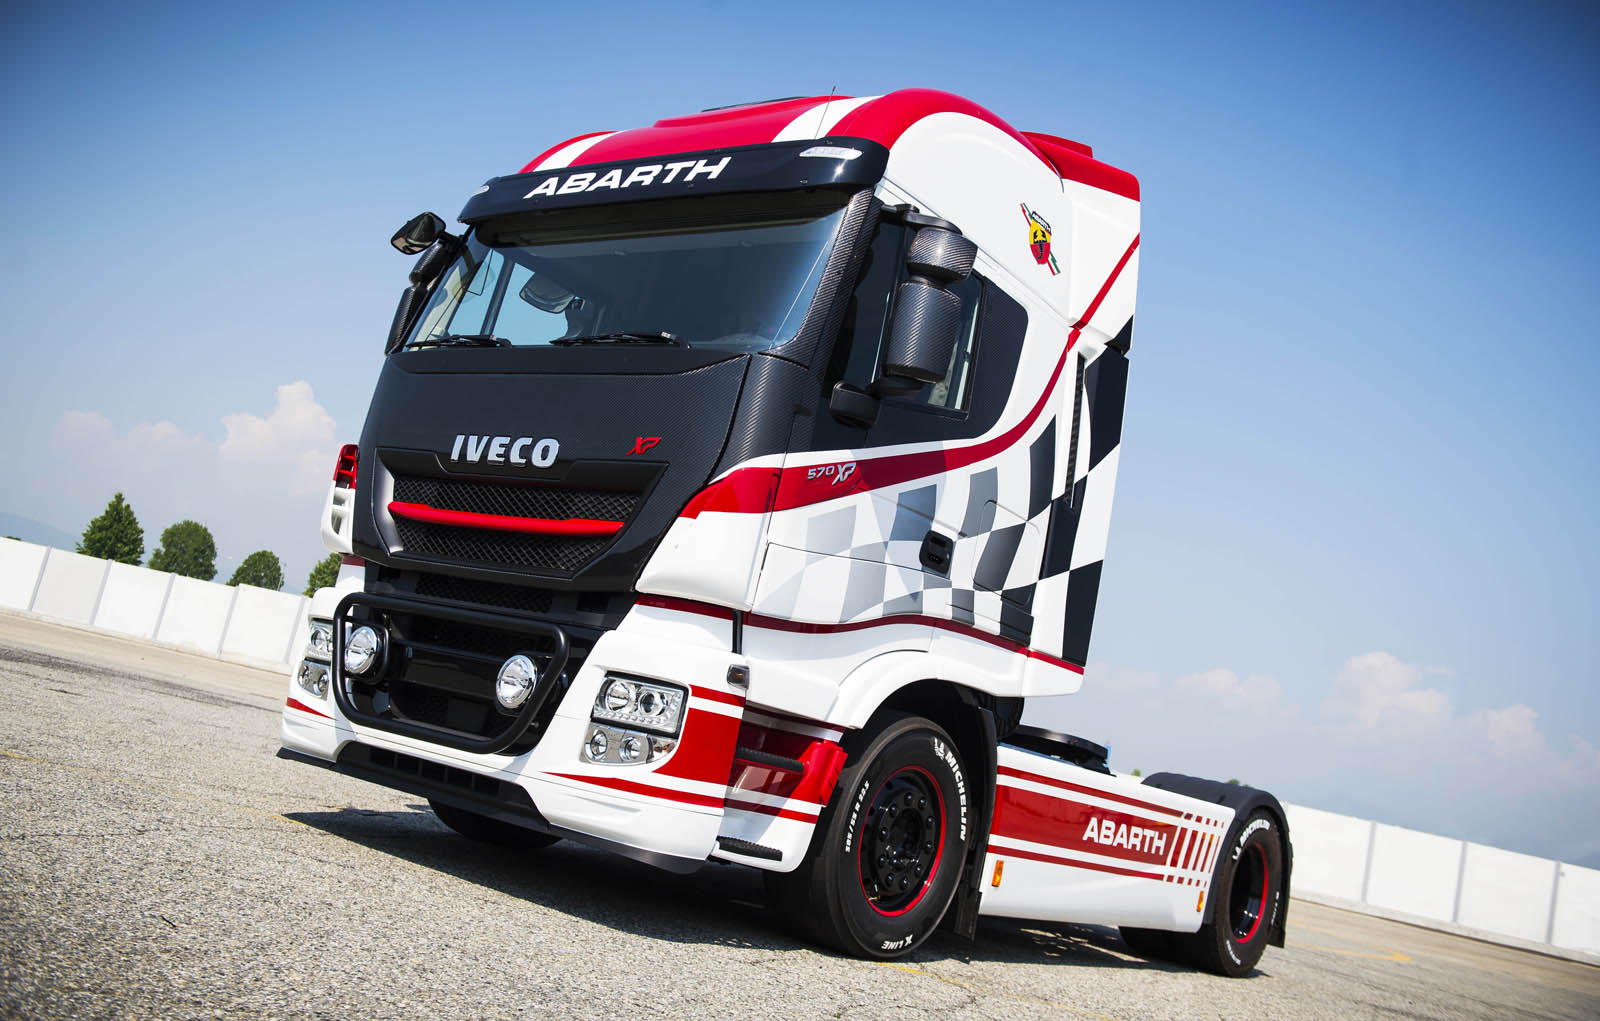 Abarth Iveco truck (3)